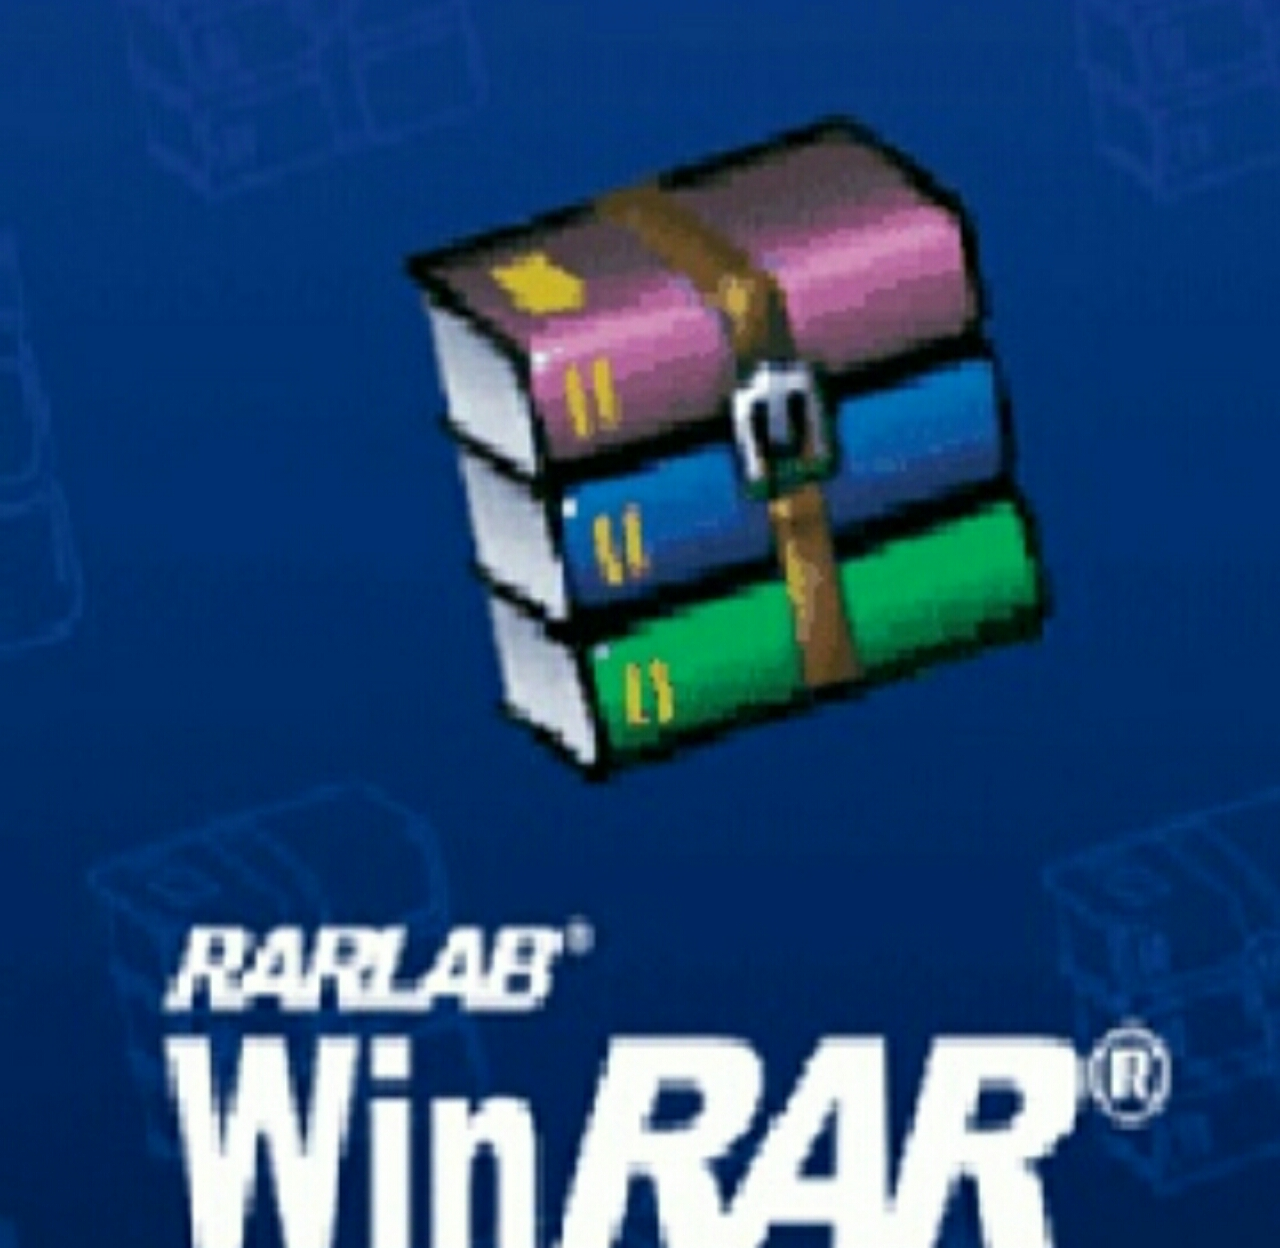 winrar software free download for pc for free - Techz dunia